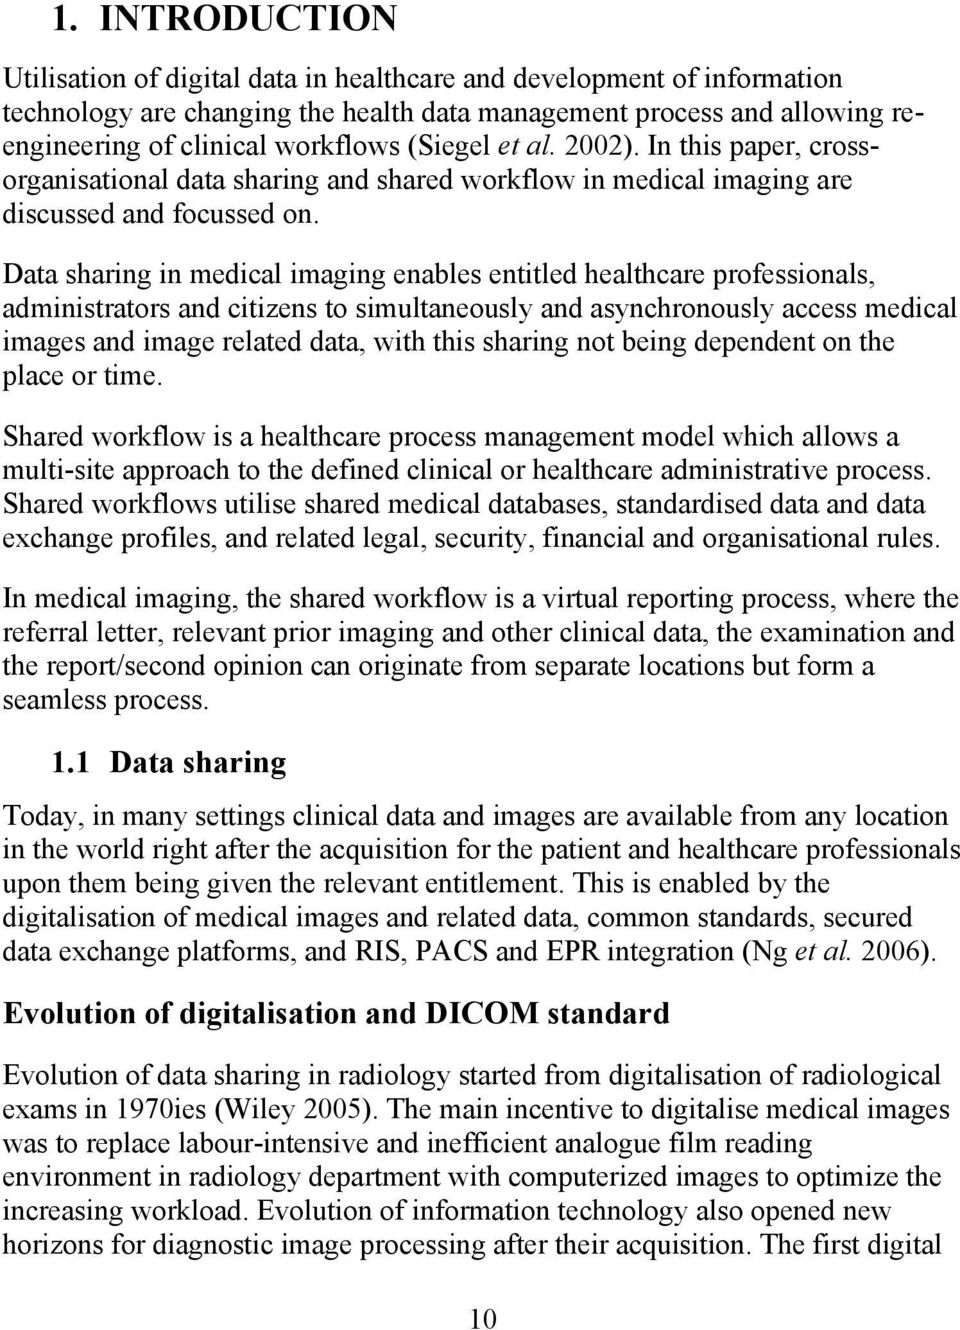 Data sharing in medical imaging enables entitled healthcare professionals, administrators and citizens to simultaneously and asynchronously access medical images and image related data, with this